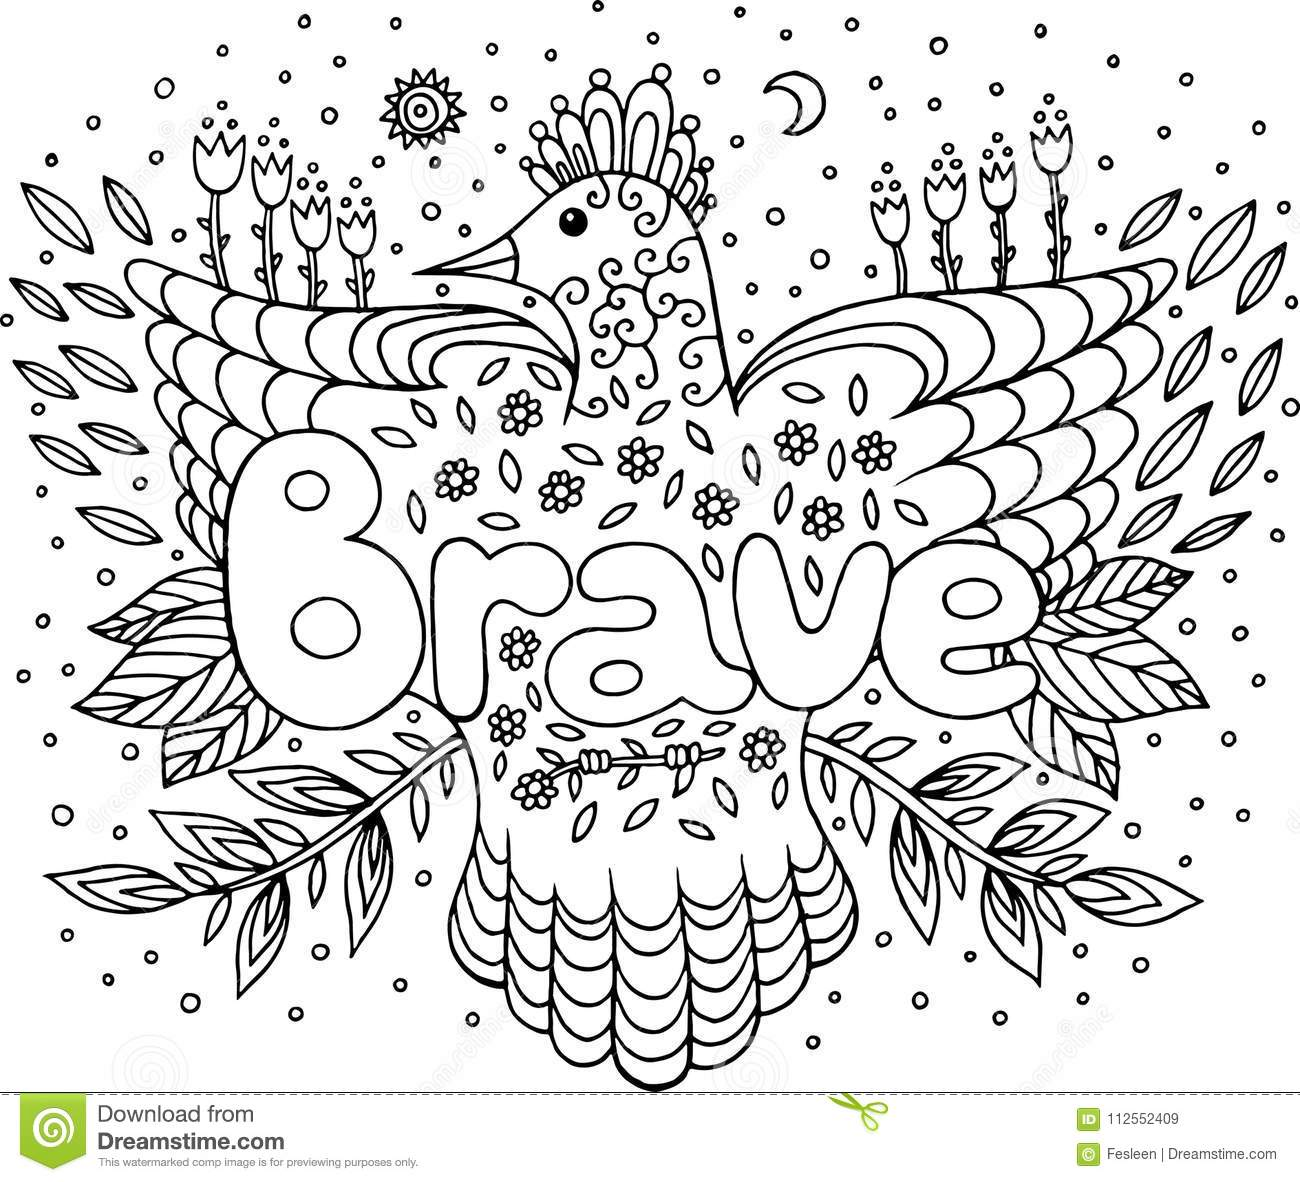 coloring page for adults with mandala and brave word